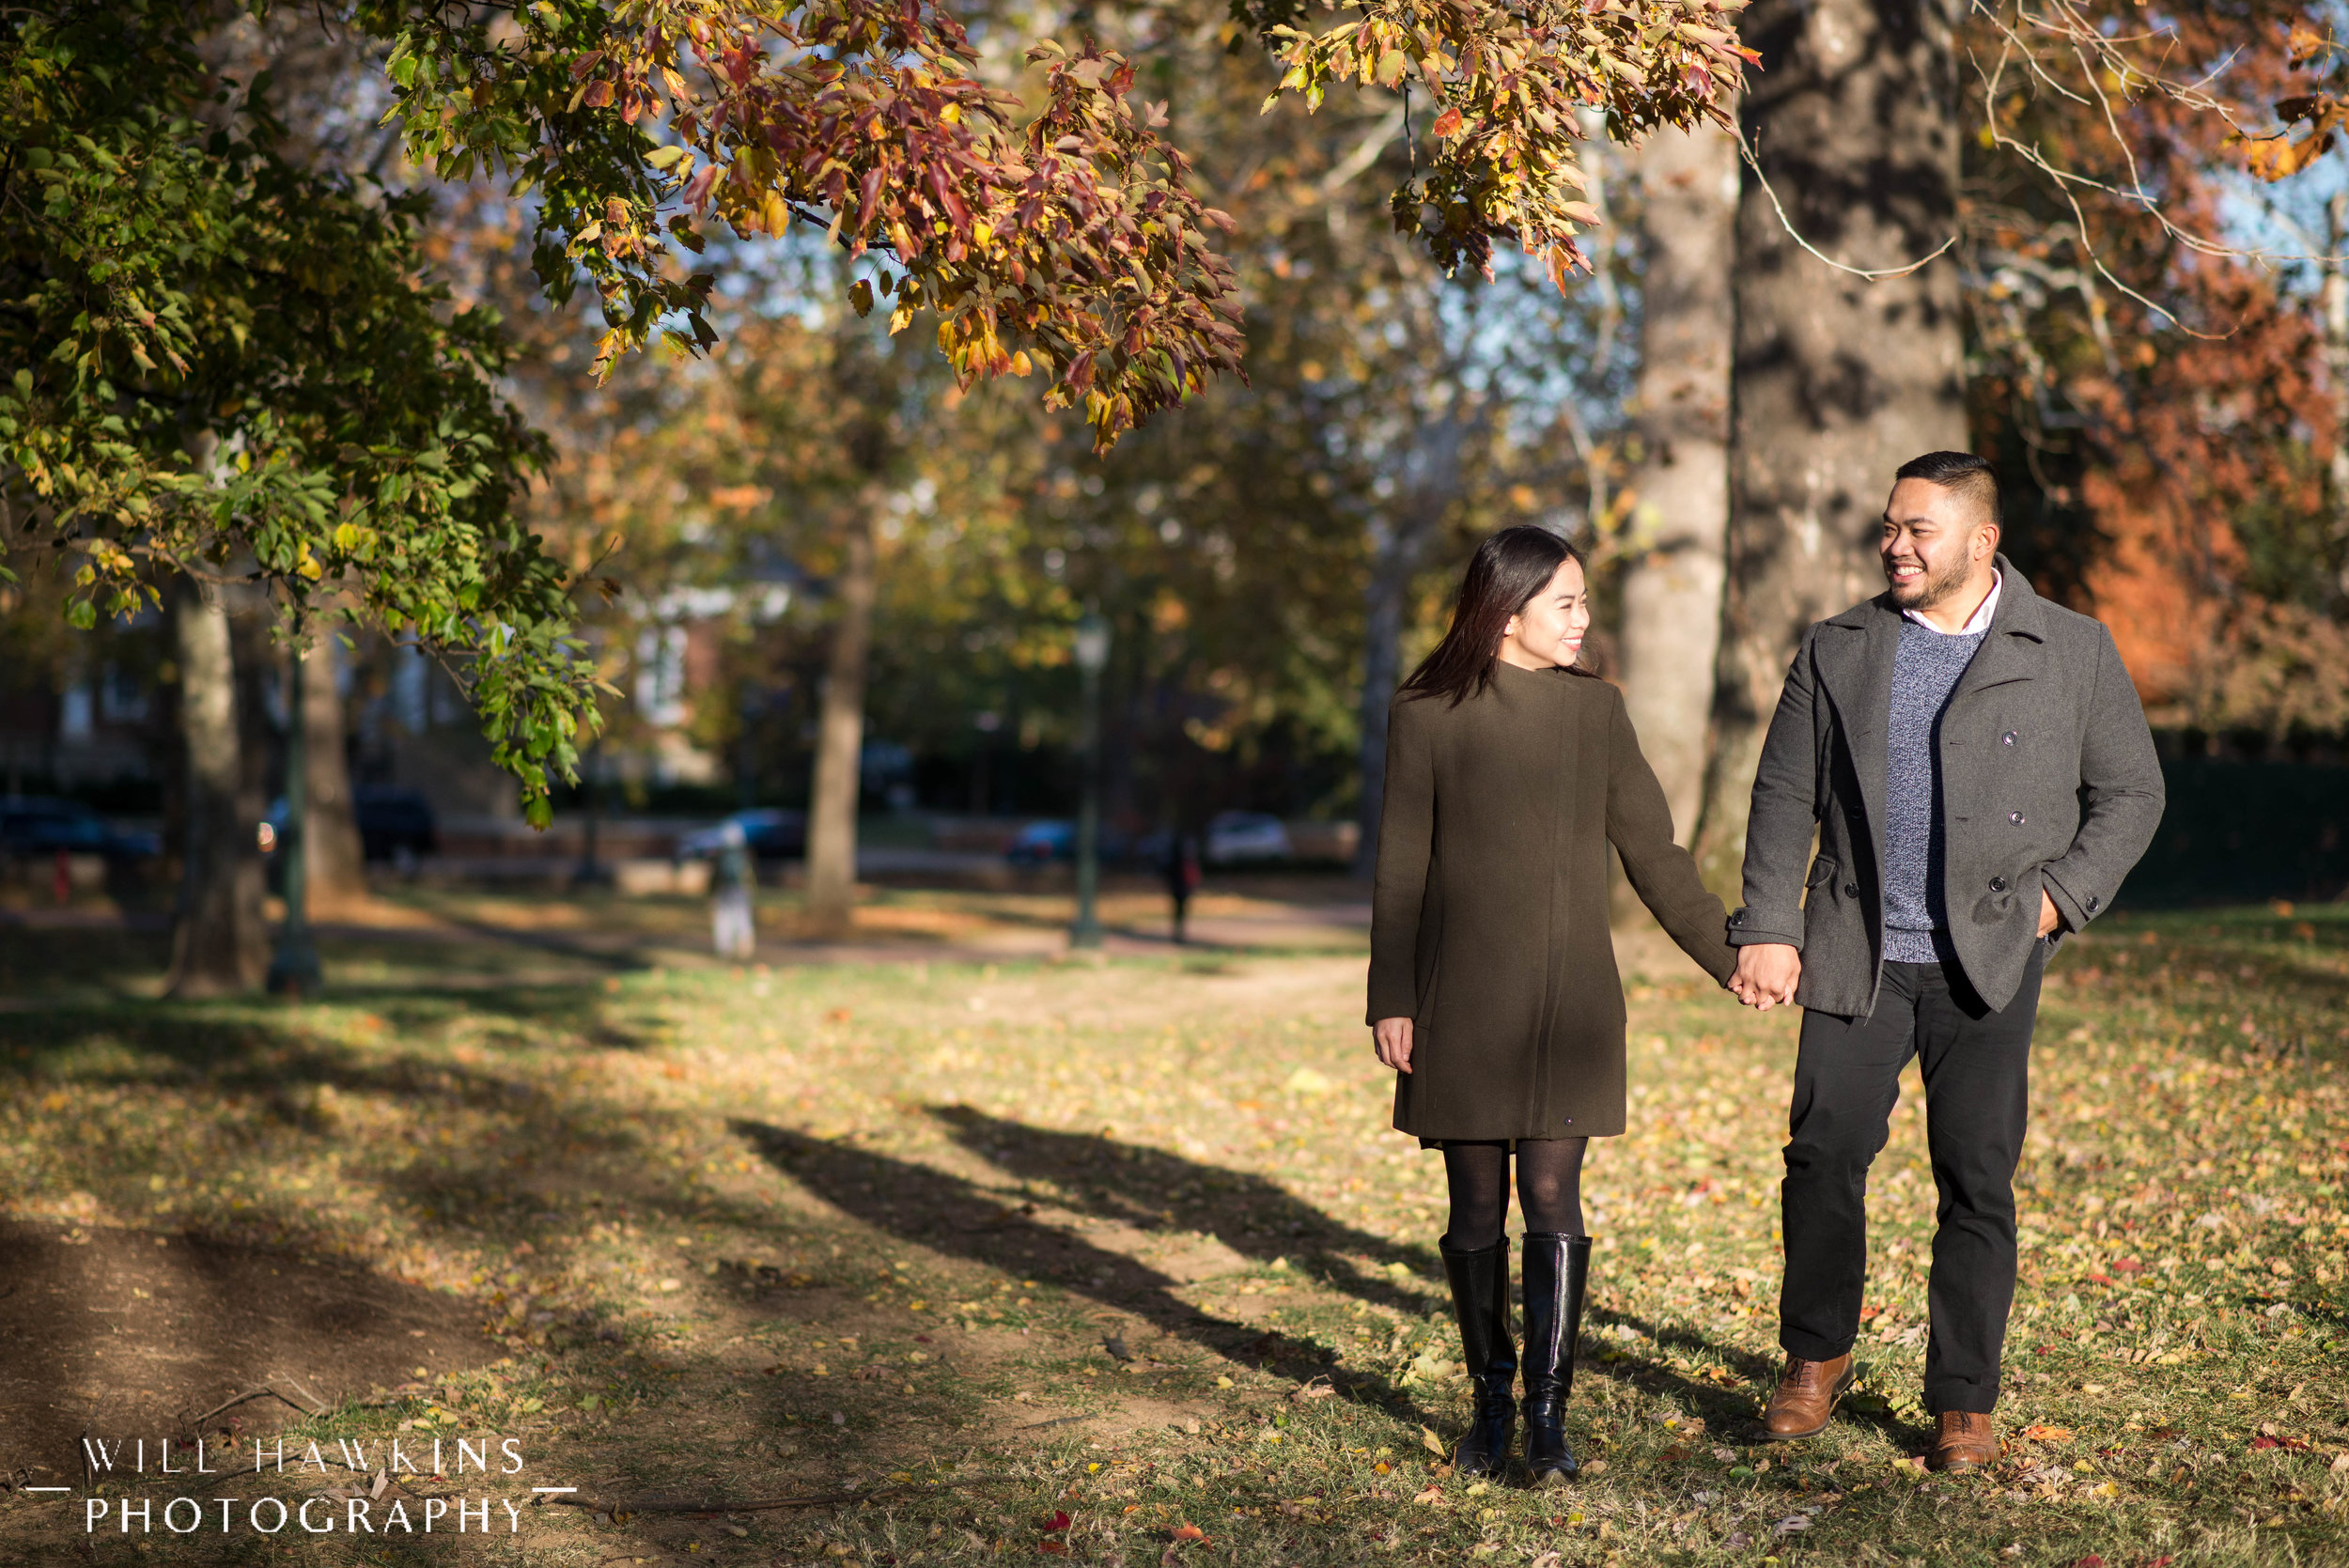 Will Hawkins Photography VCU Engagement Session Charlottesville Wedding Photographer Charlottesville Engagement Session